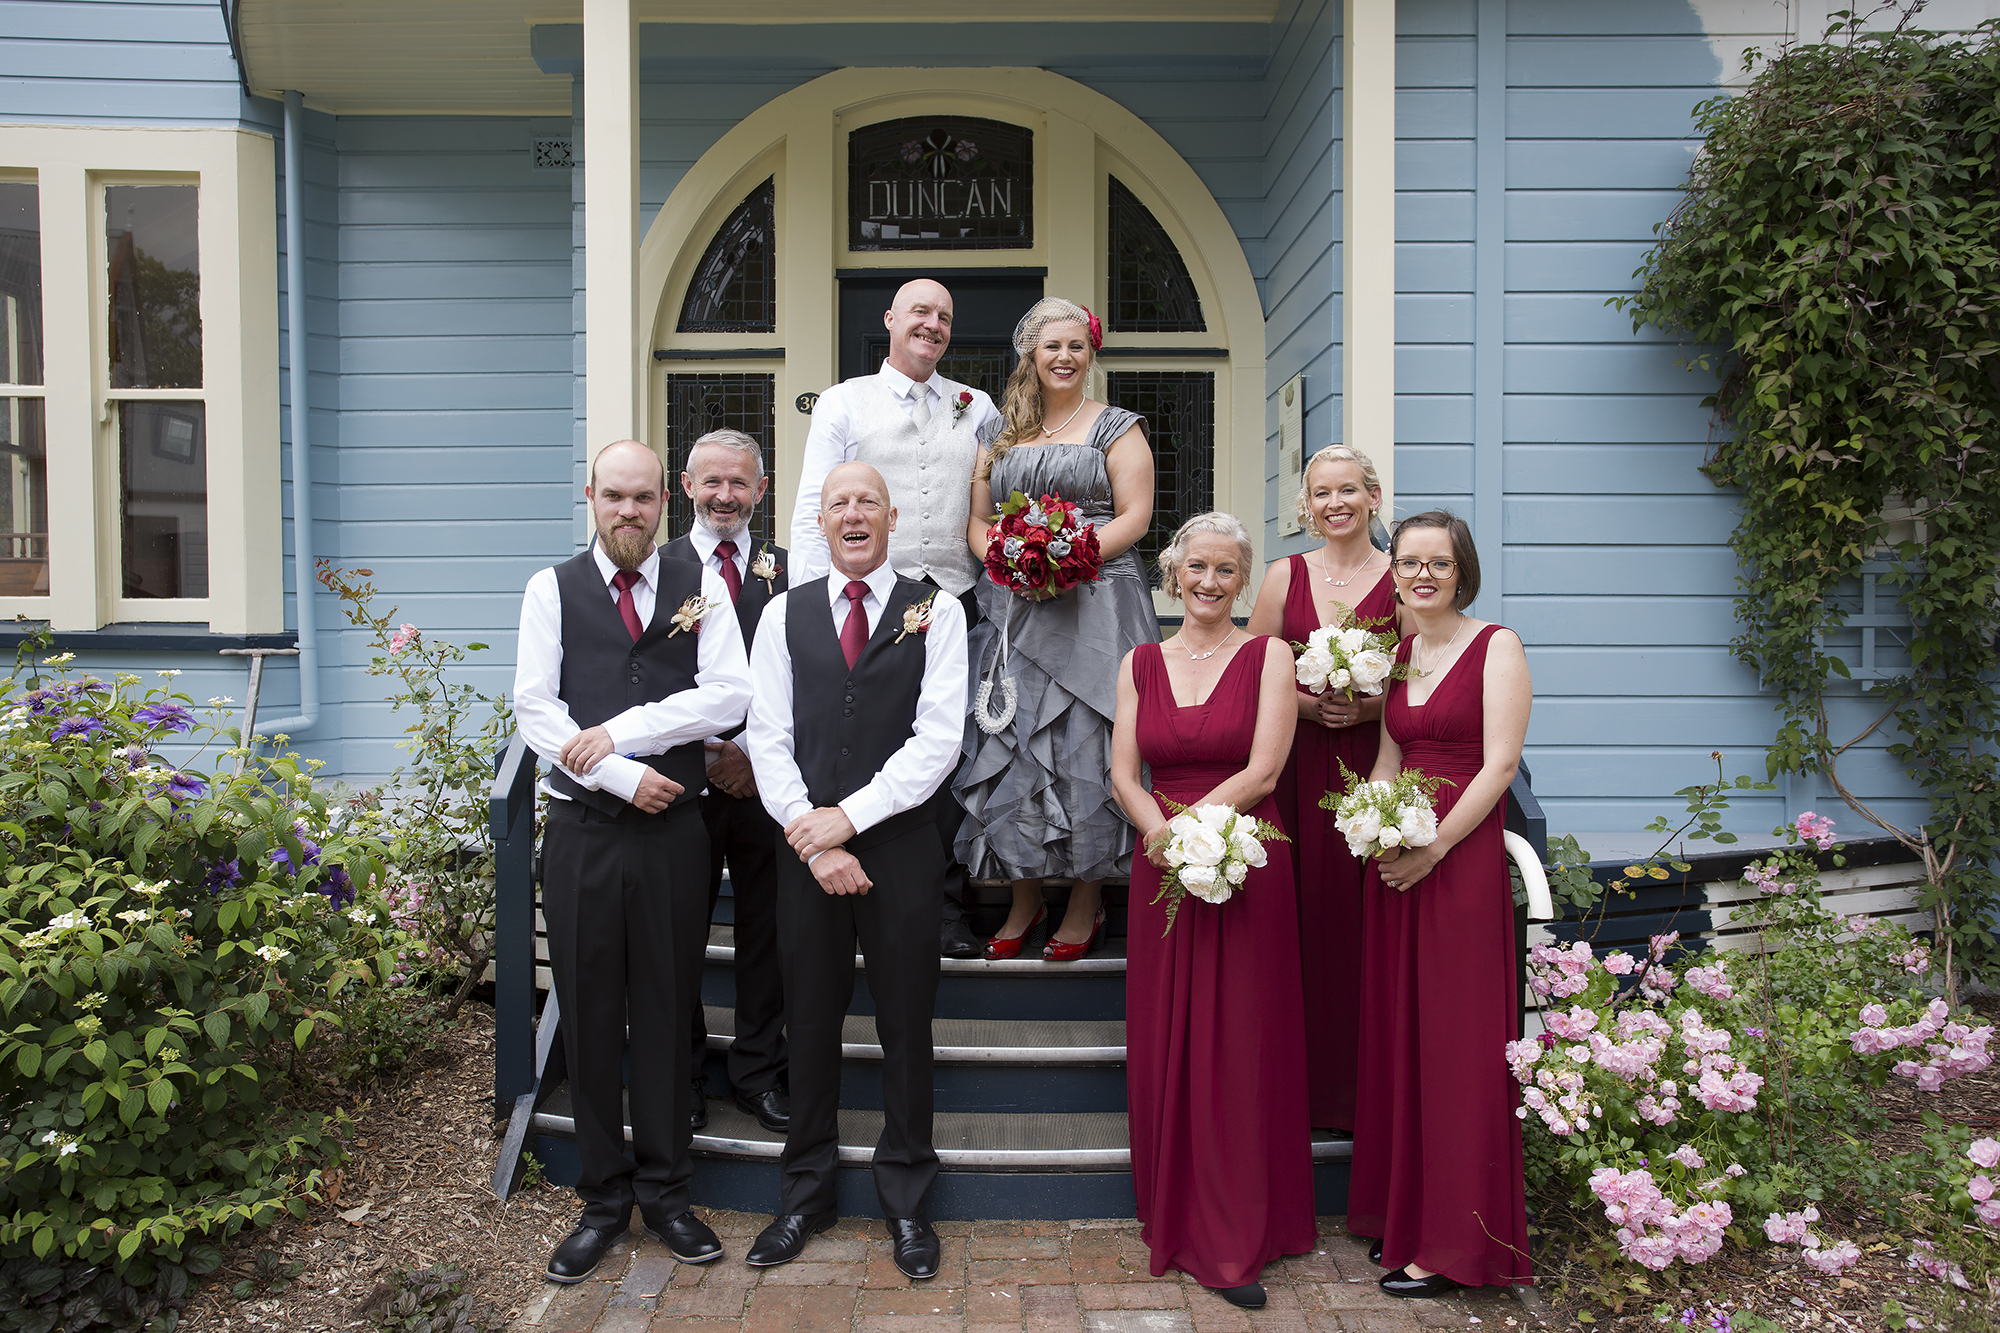 4 Bride and Groom Bridal Party112.jpg